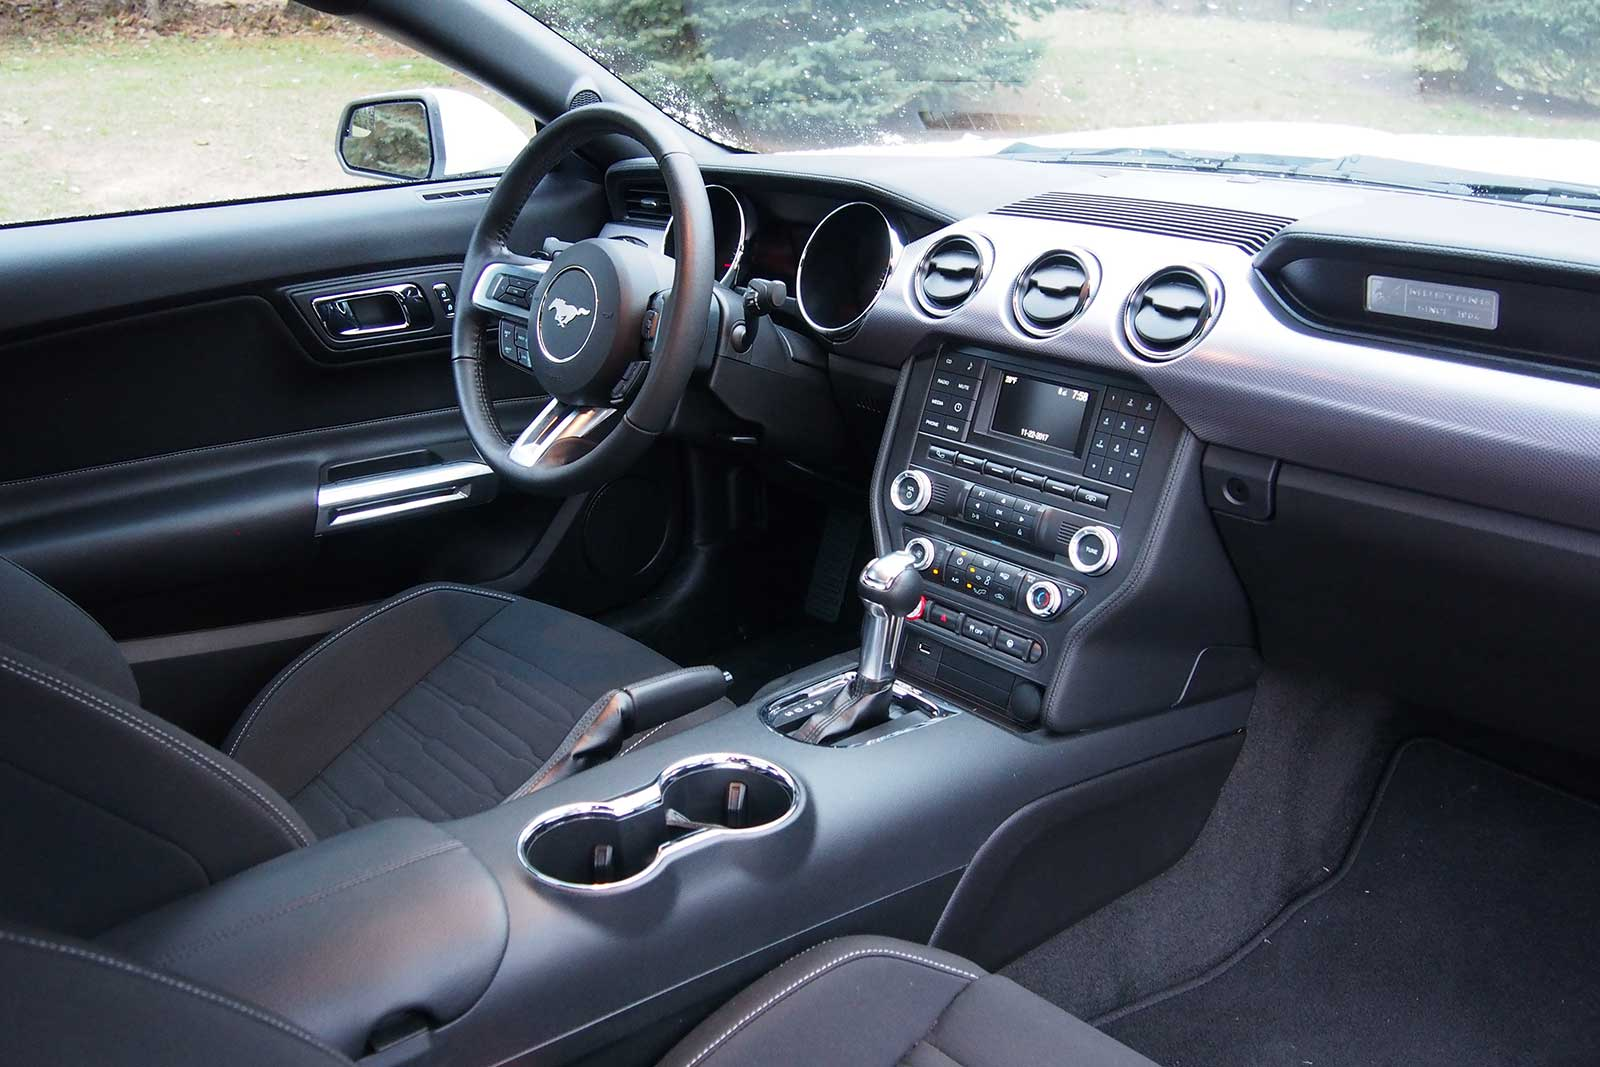 2017 Ford Ecoboost Mustang Performance Interior 06